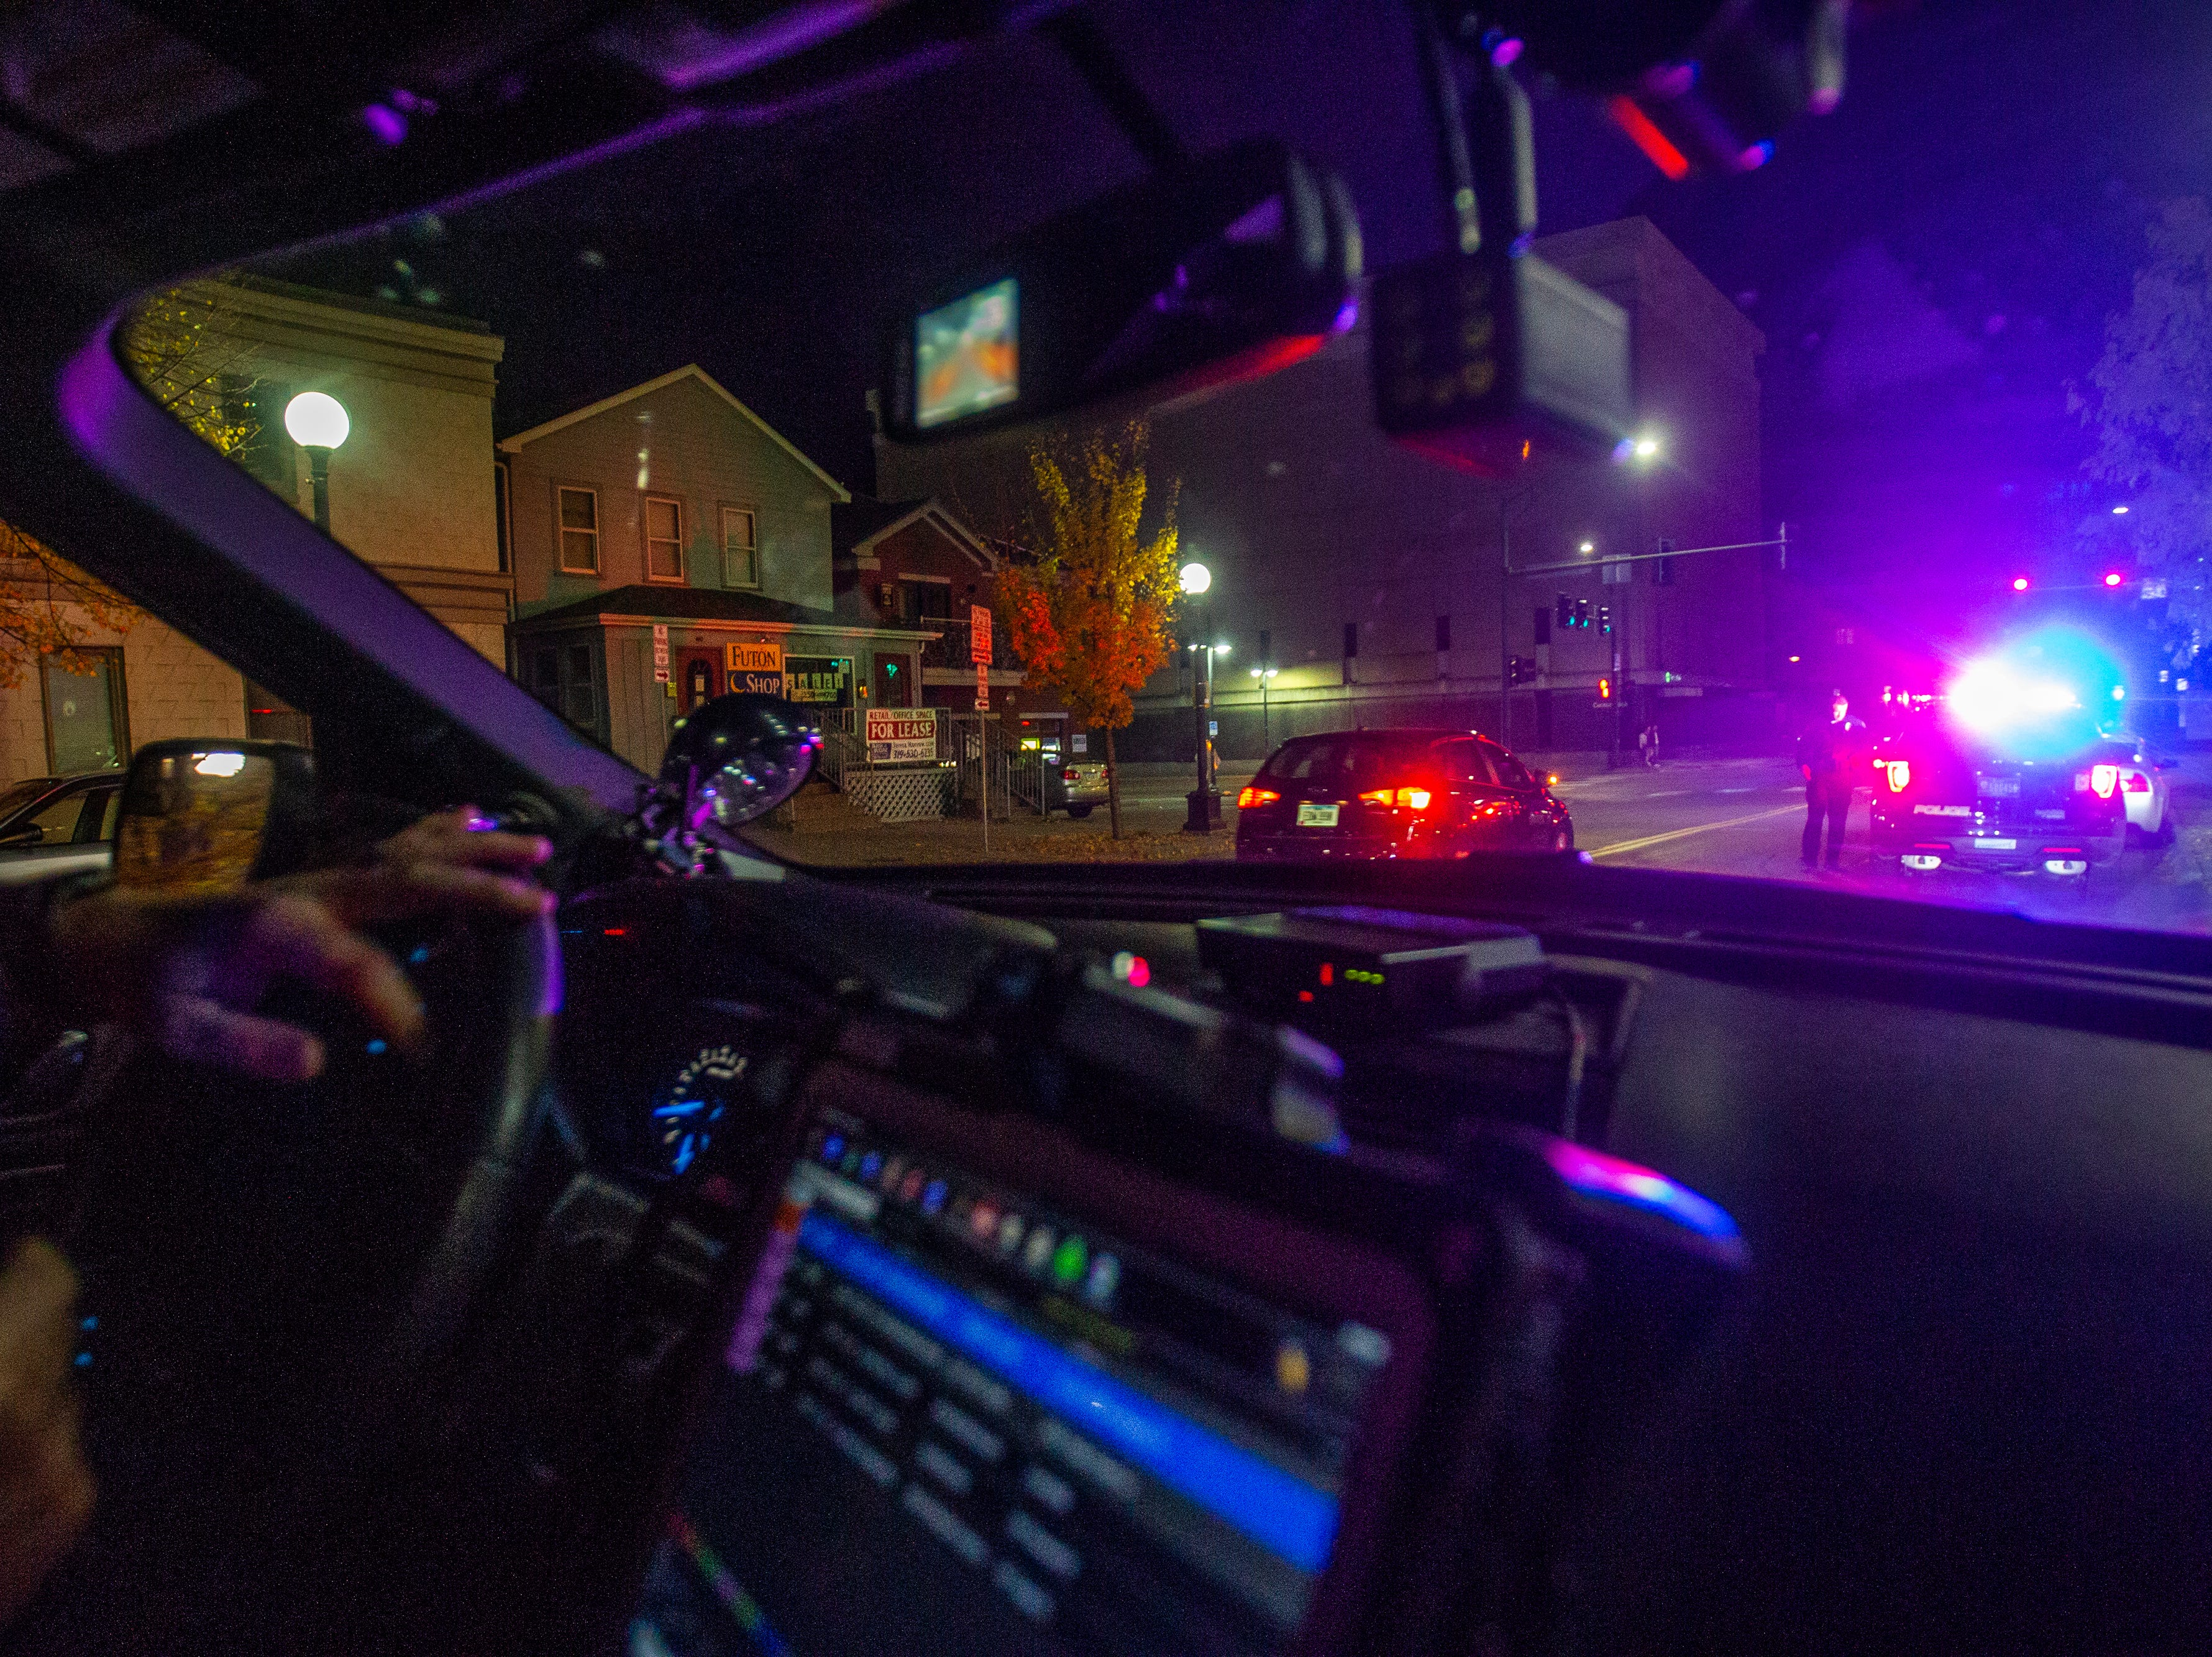 An Iowa City Police Officer conducts a traffic stop on Wednesday, Oct. 31, 2018, along S. Linn Street in Iowa City.